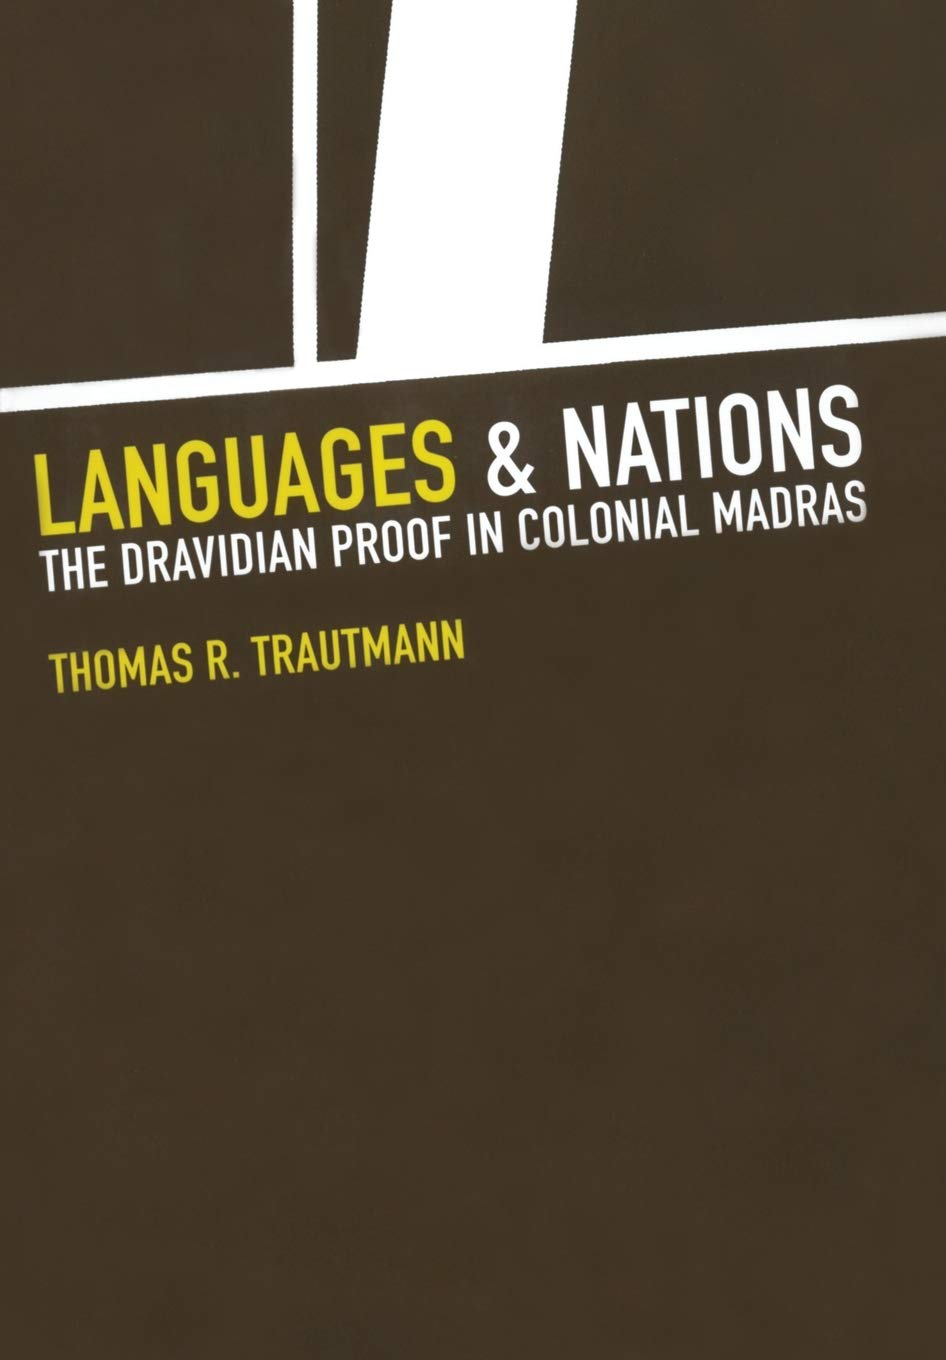 Languages and Nations: The Dravidian Proof in Colonial Madras by University of California Press